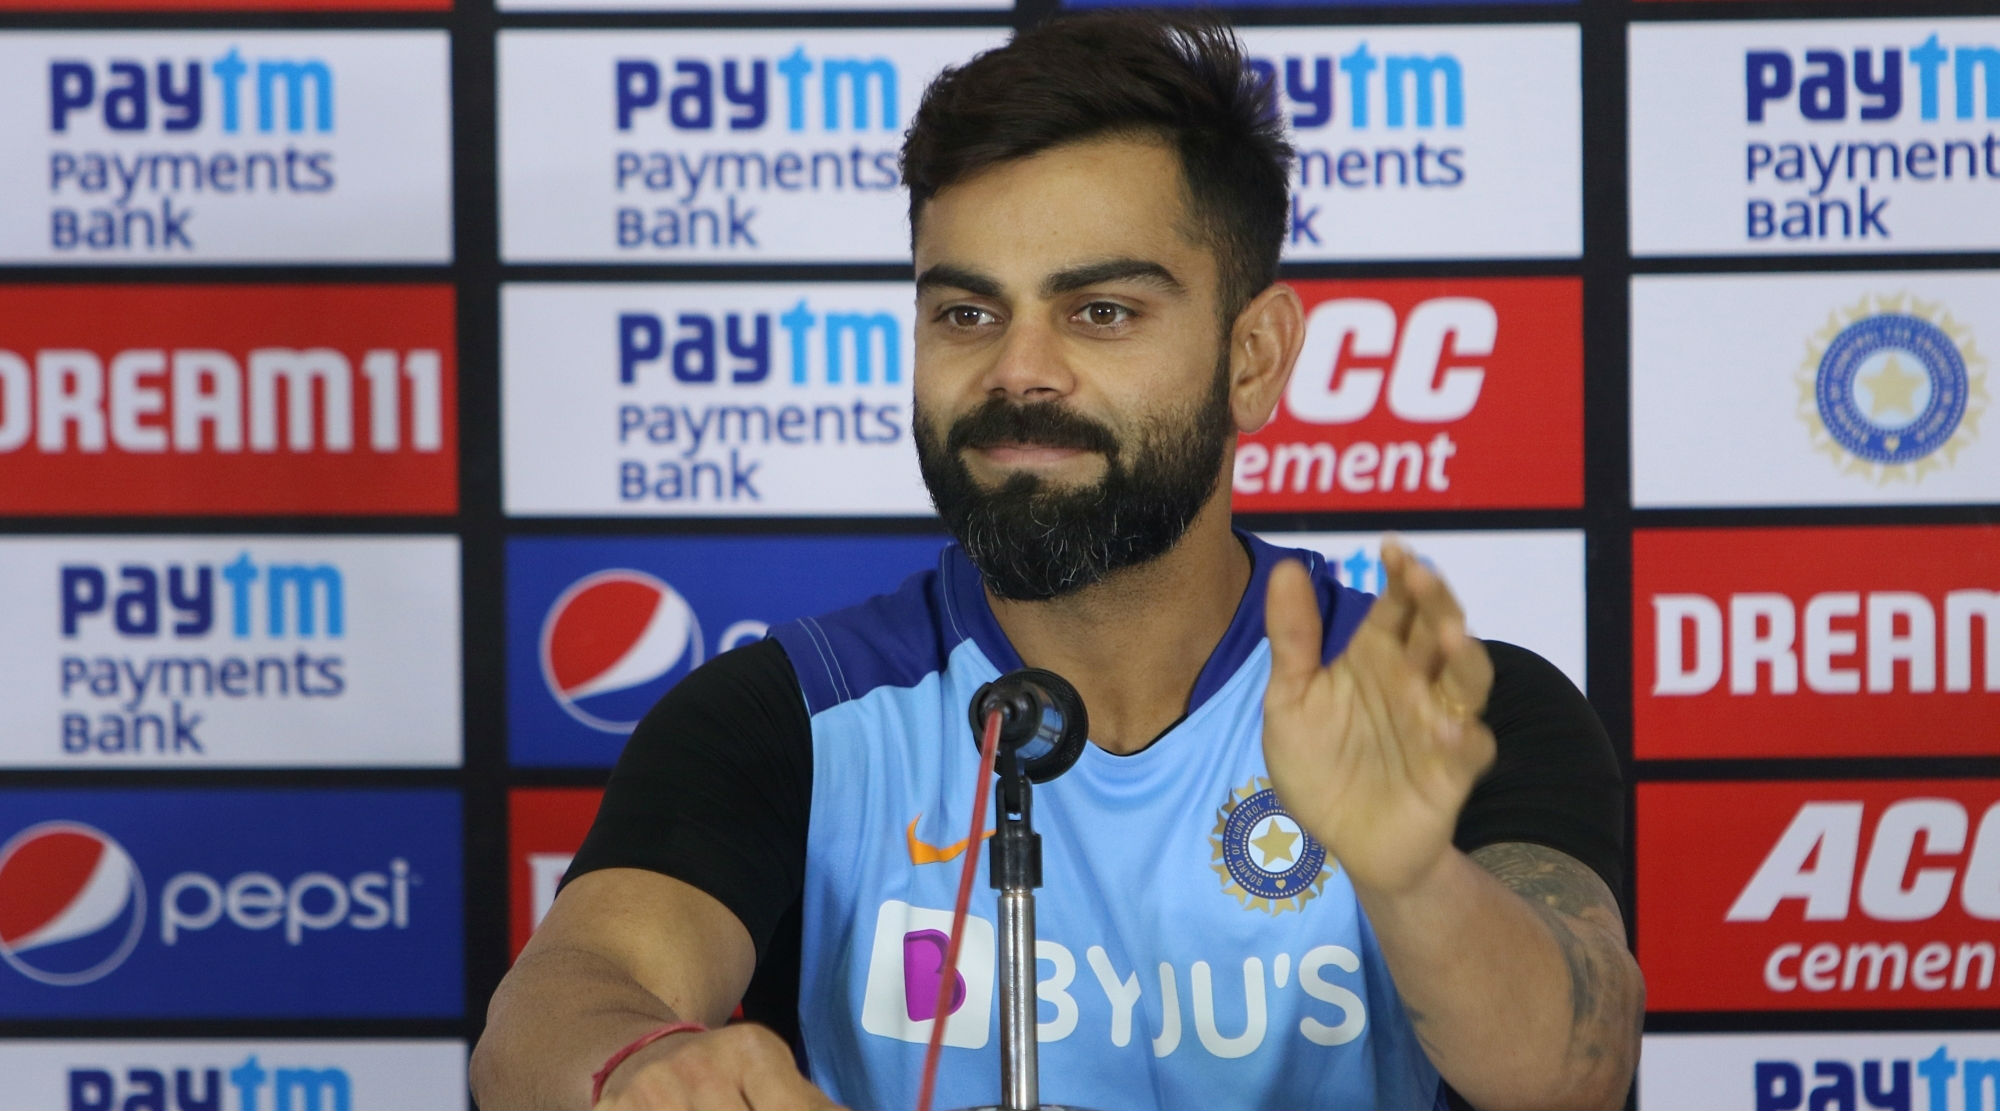 Virat Kohli Ahead of New Zealand vs India T20I Series 2020: Leadership Can't Always Be Determined by Results